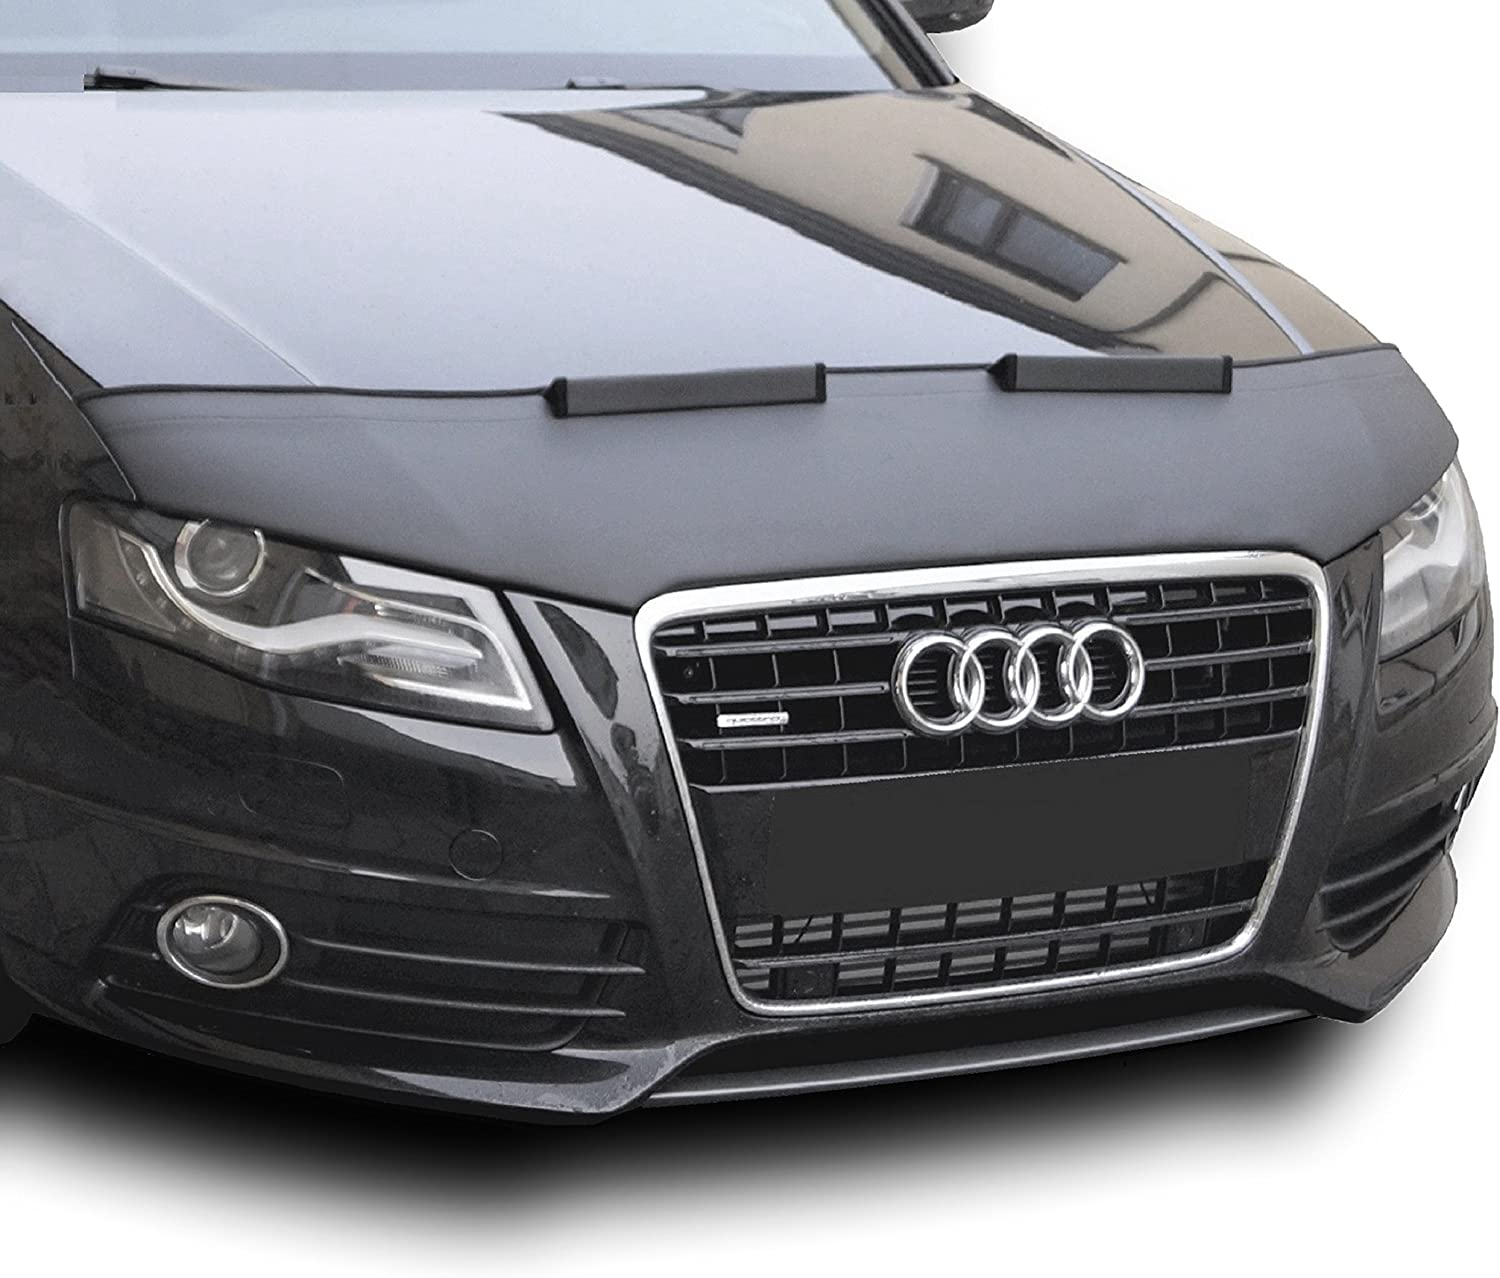 Hood Bra for Audi A4 B7 Bonnet Car Bra Front End Cover Nose Mask Stoneguard Protector TUNING